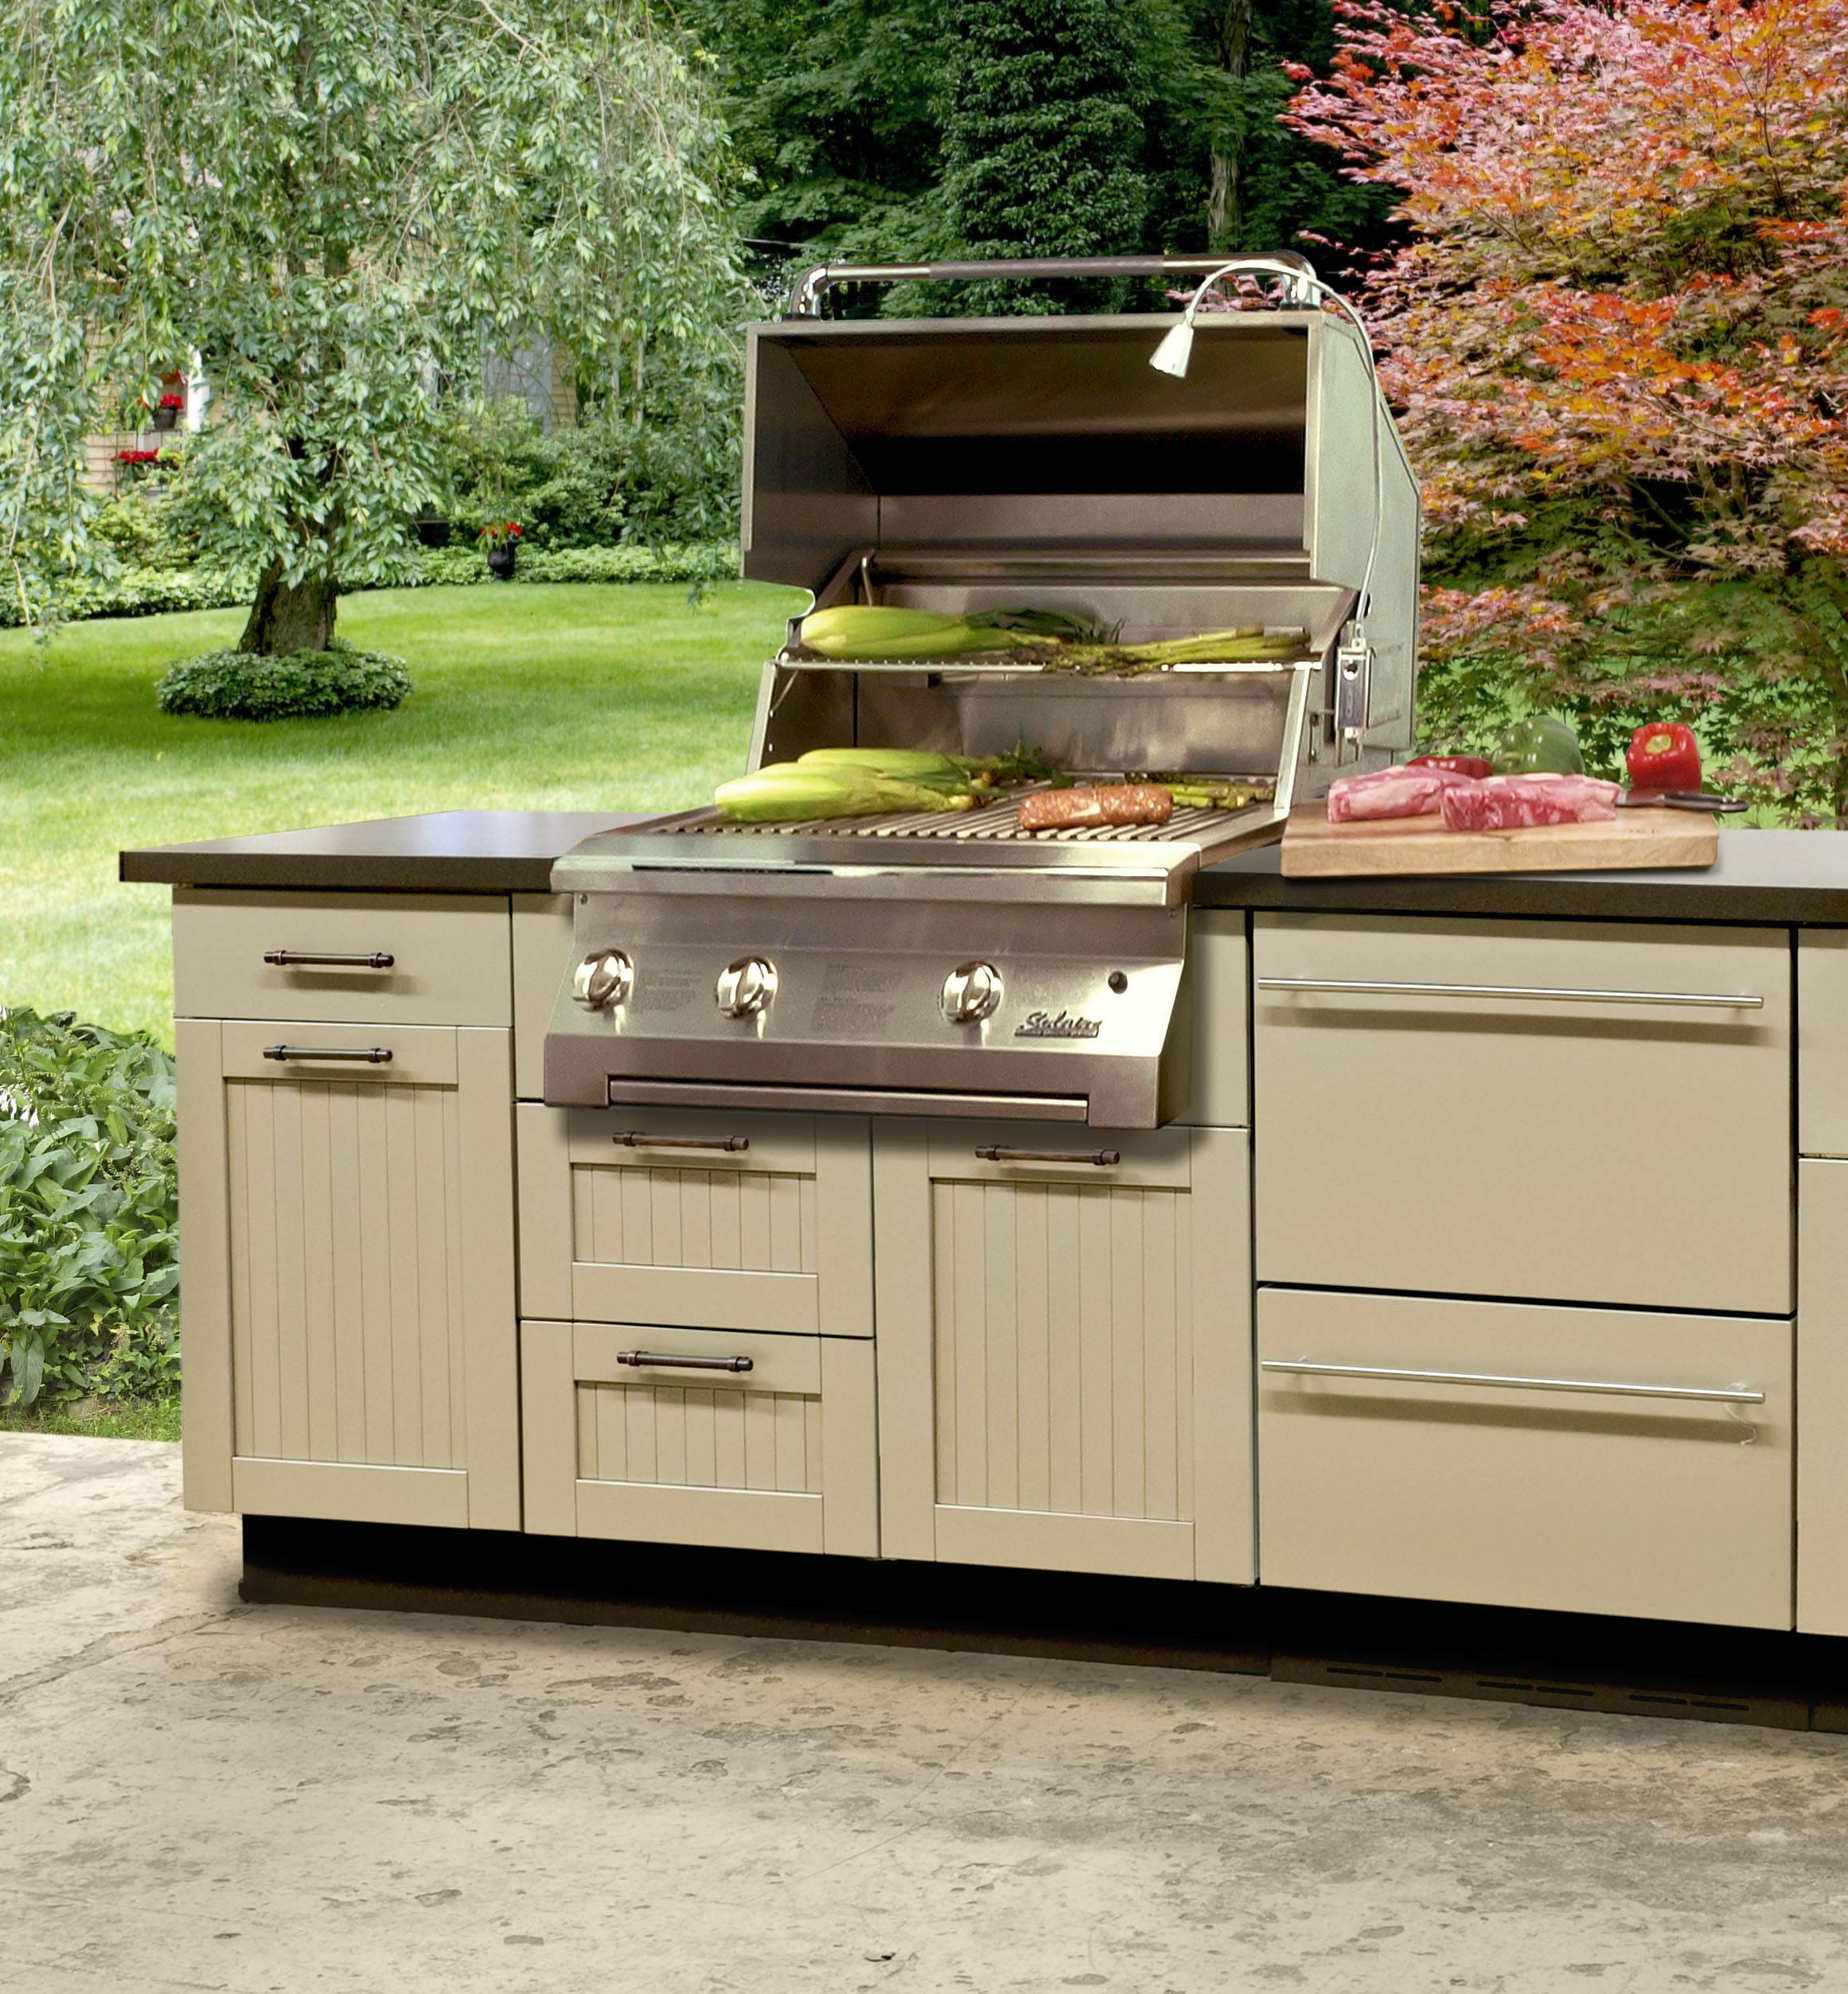 danver outdoor kitchens art van kitchen tables stainless steel cabinetry kbtribechat olympus digital camera